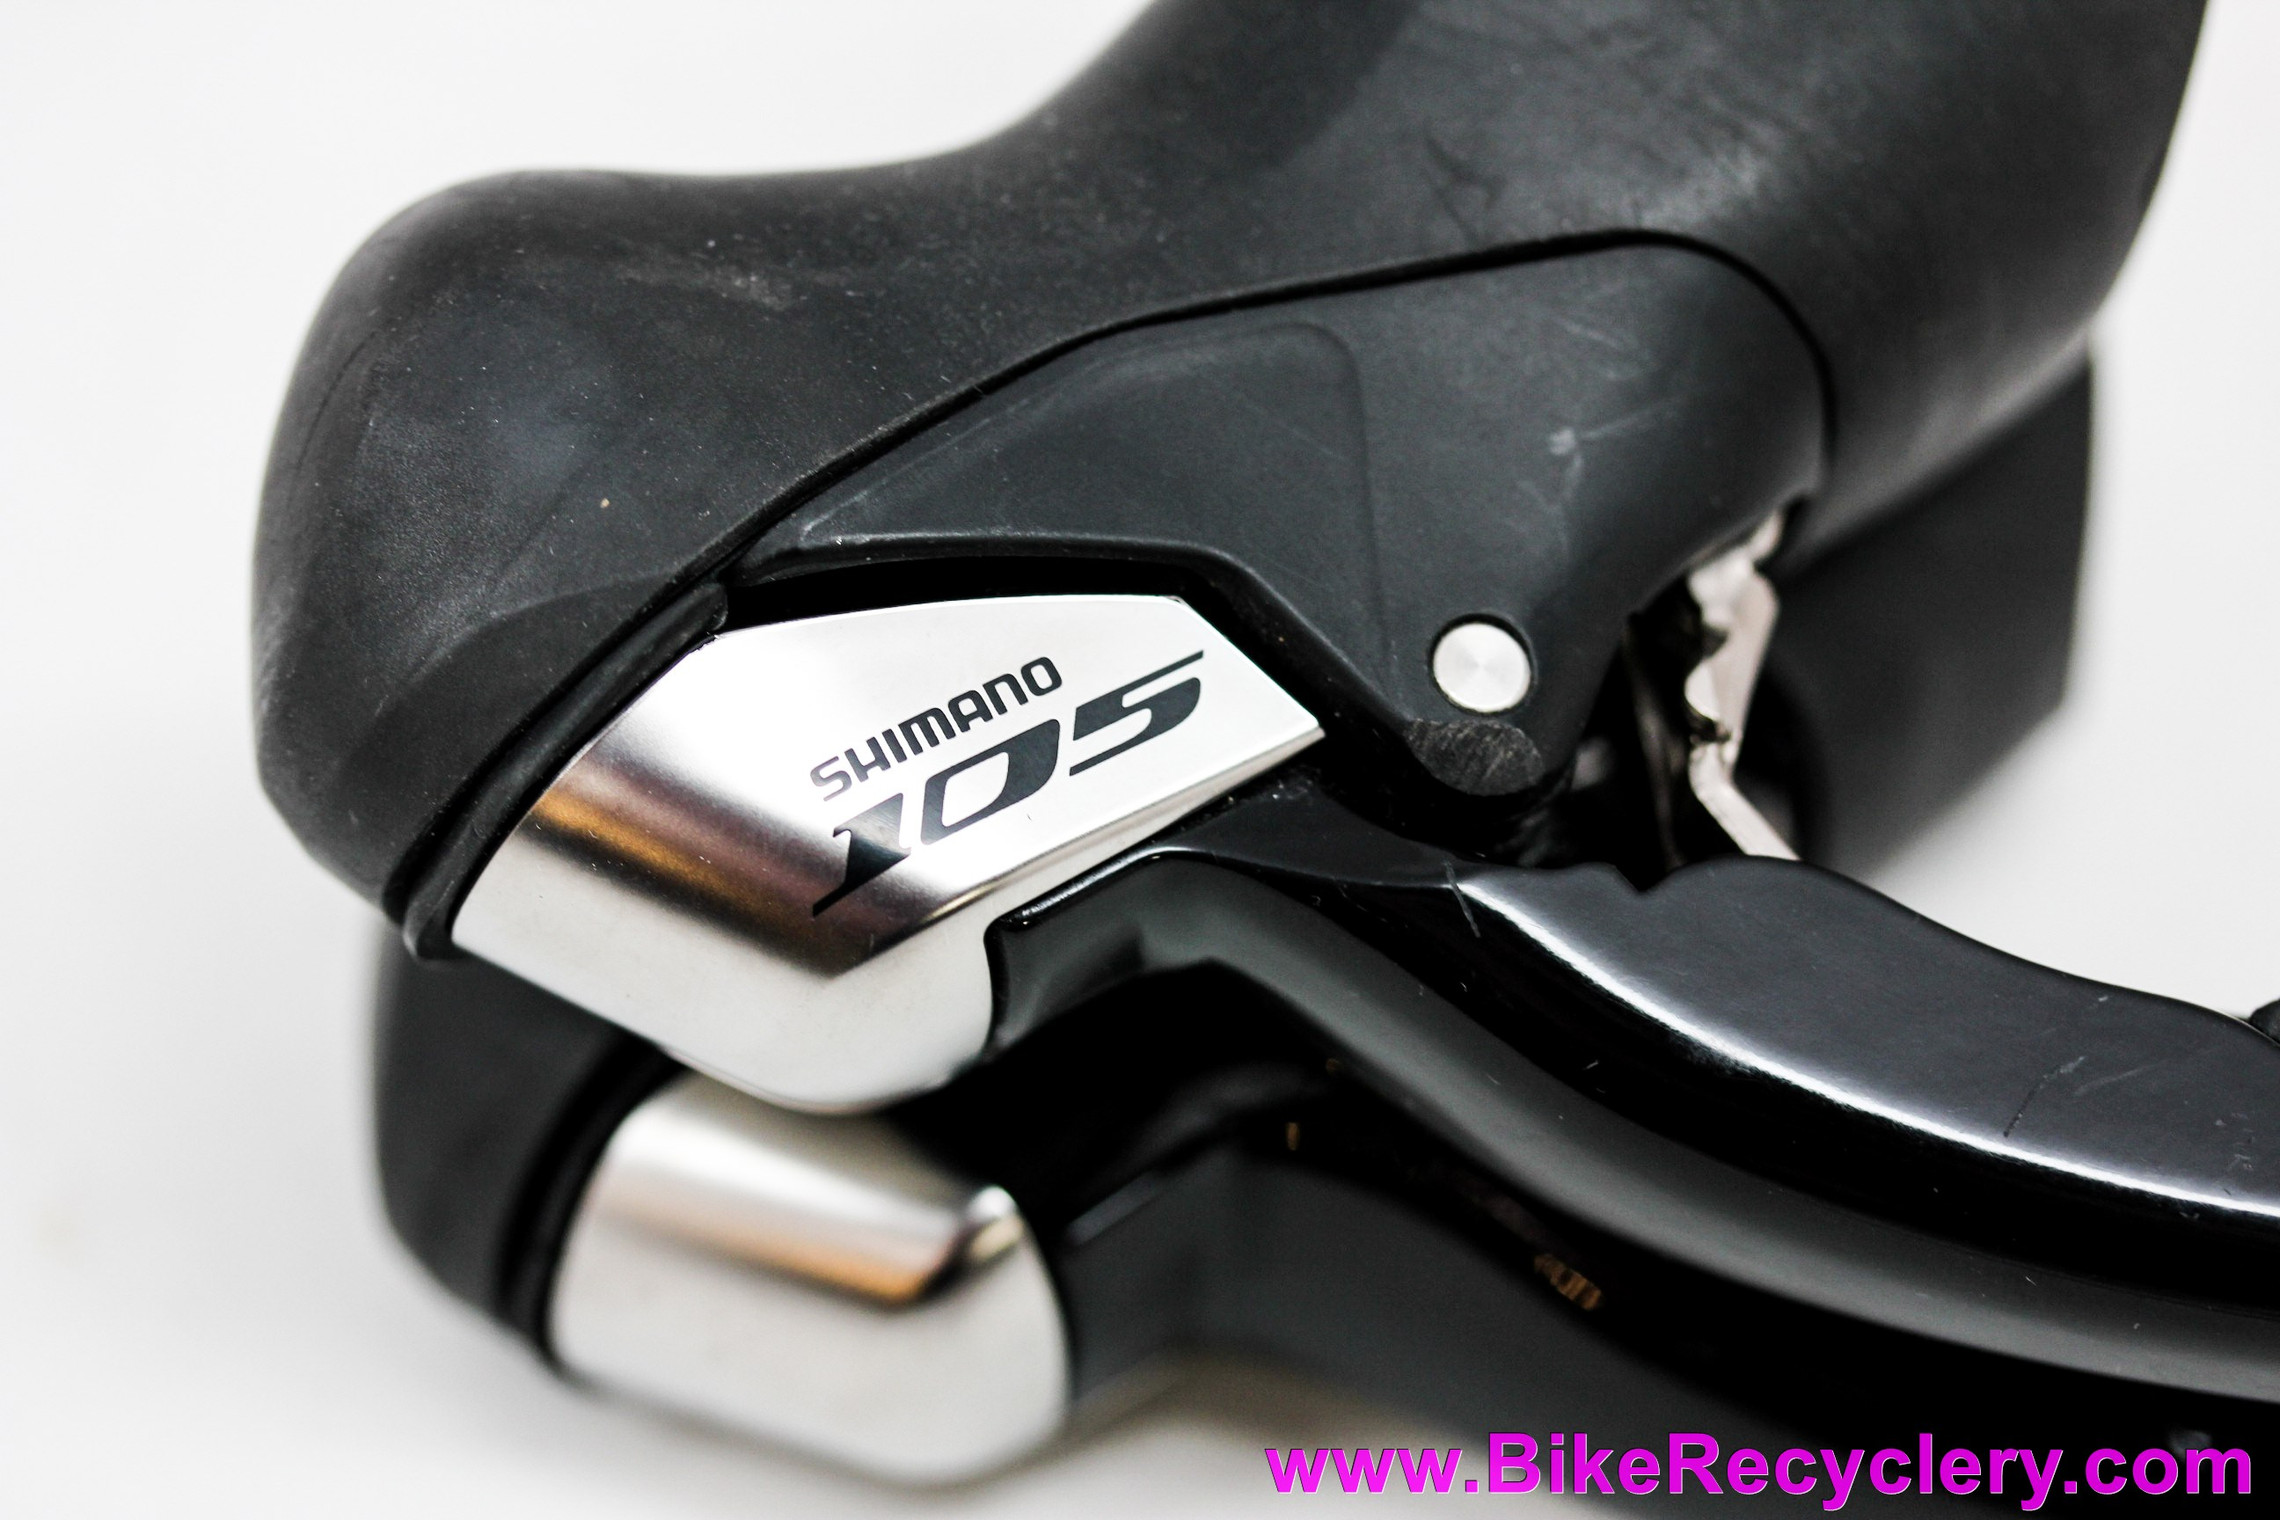 Shimano 105 ST-5700 10-Speed STI Shifters: 2x10 - Left/Right Set (Near Mint+ Low Miles)